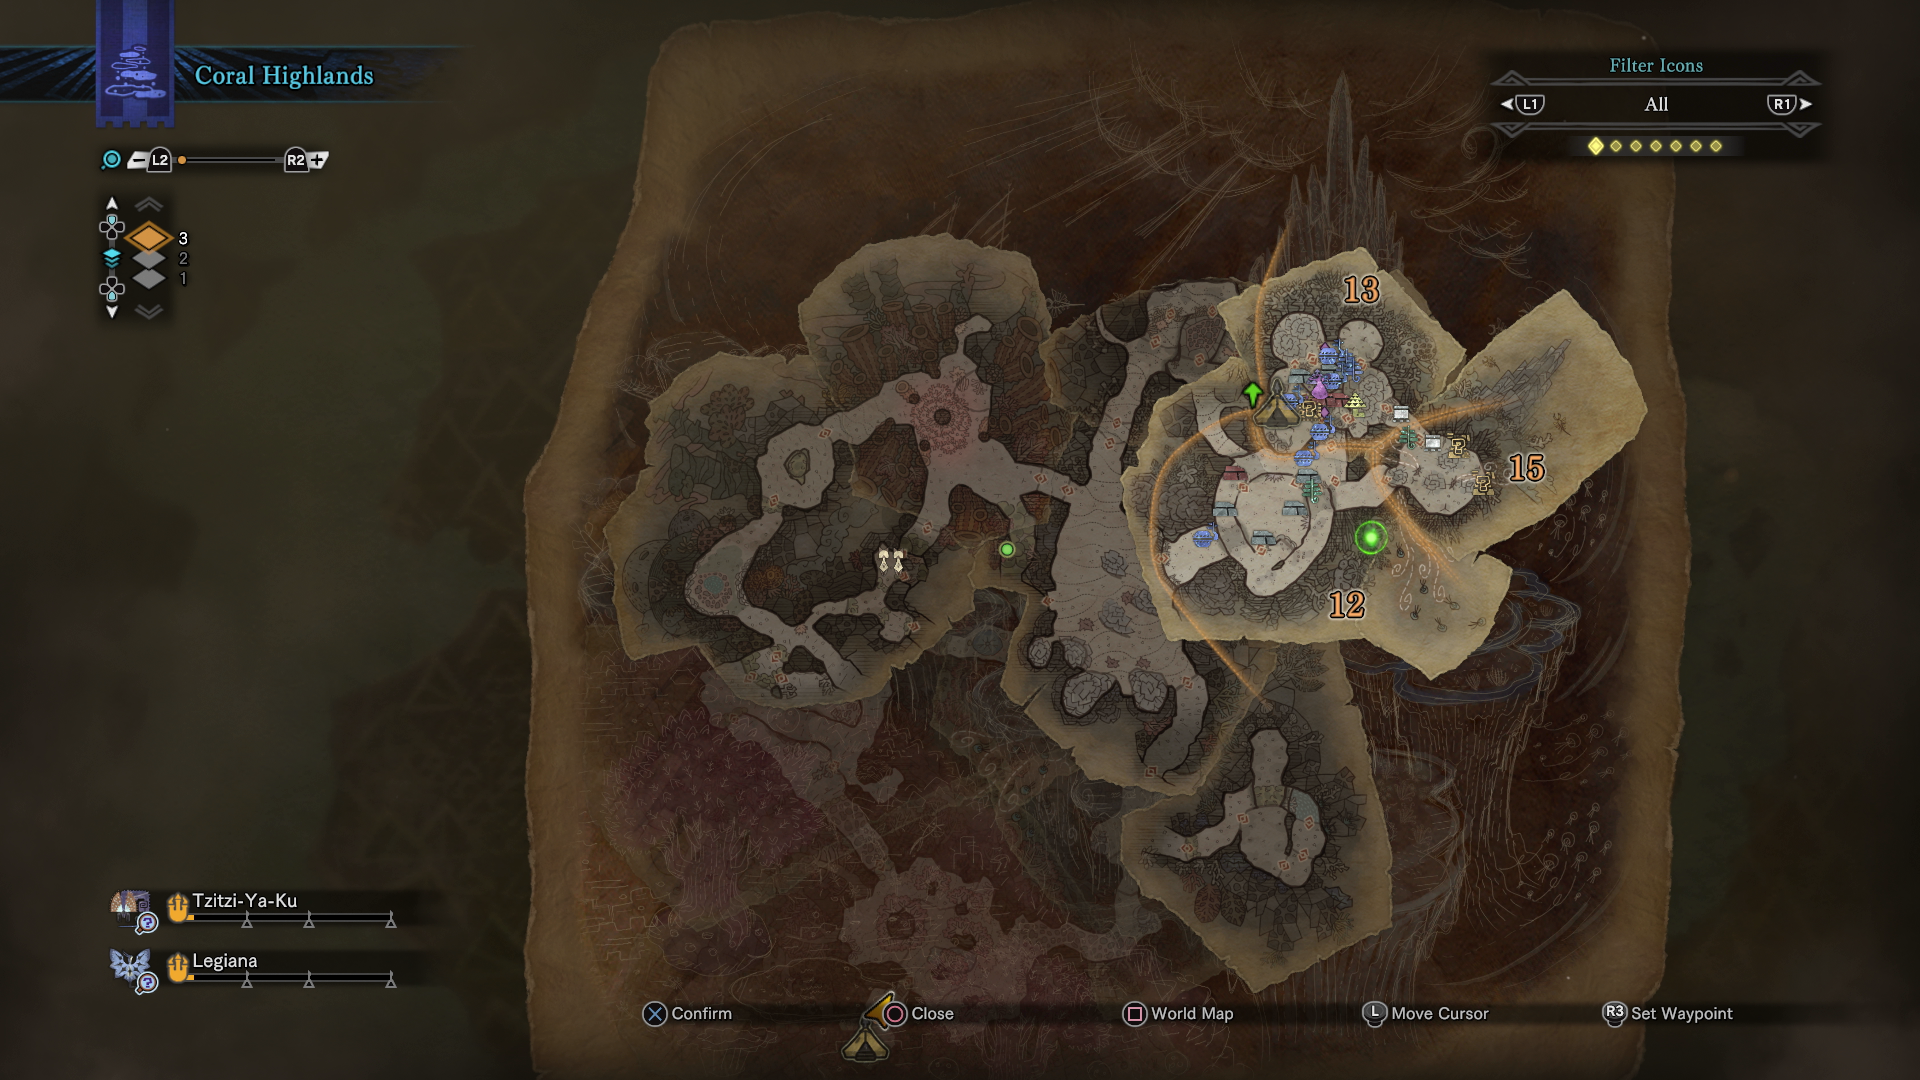 Monster Hunter World Coral Highlands Guide Complete Map